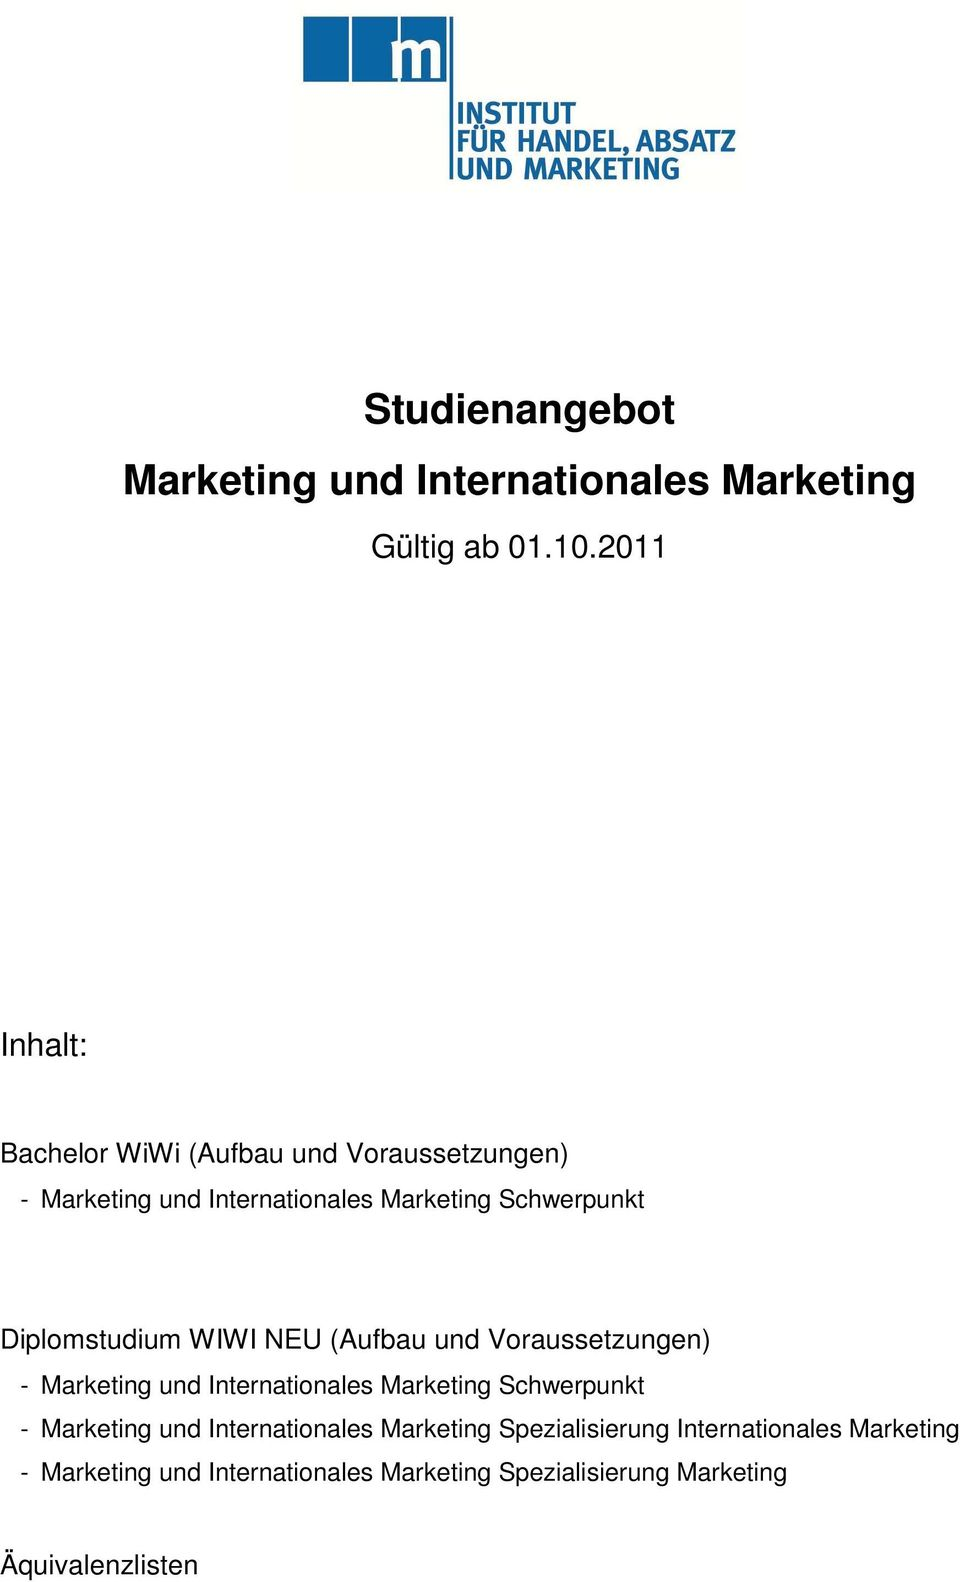 Diplomstudium WIWI NEU (Aufbau und en) - Marketing und Internationales Marketing Schwerpunkt - Marketing